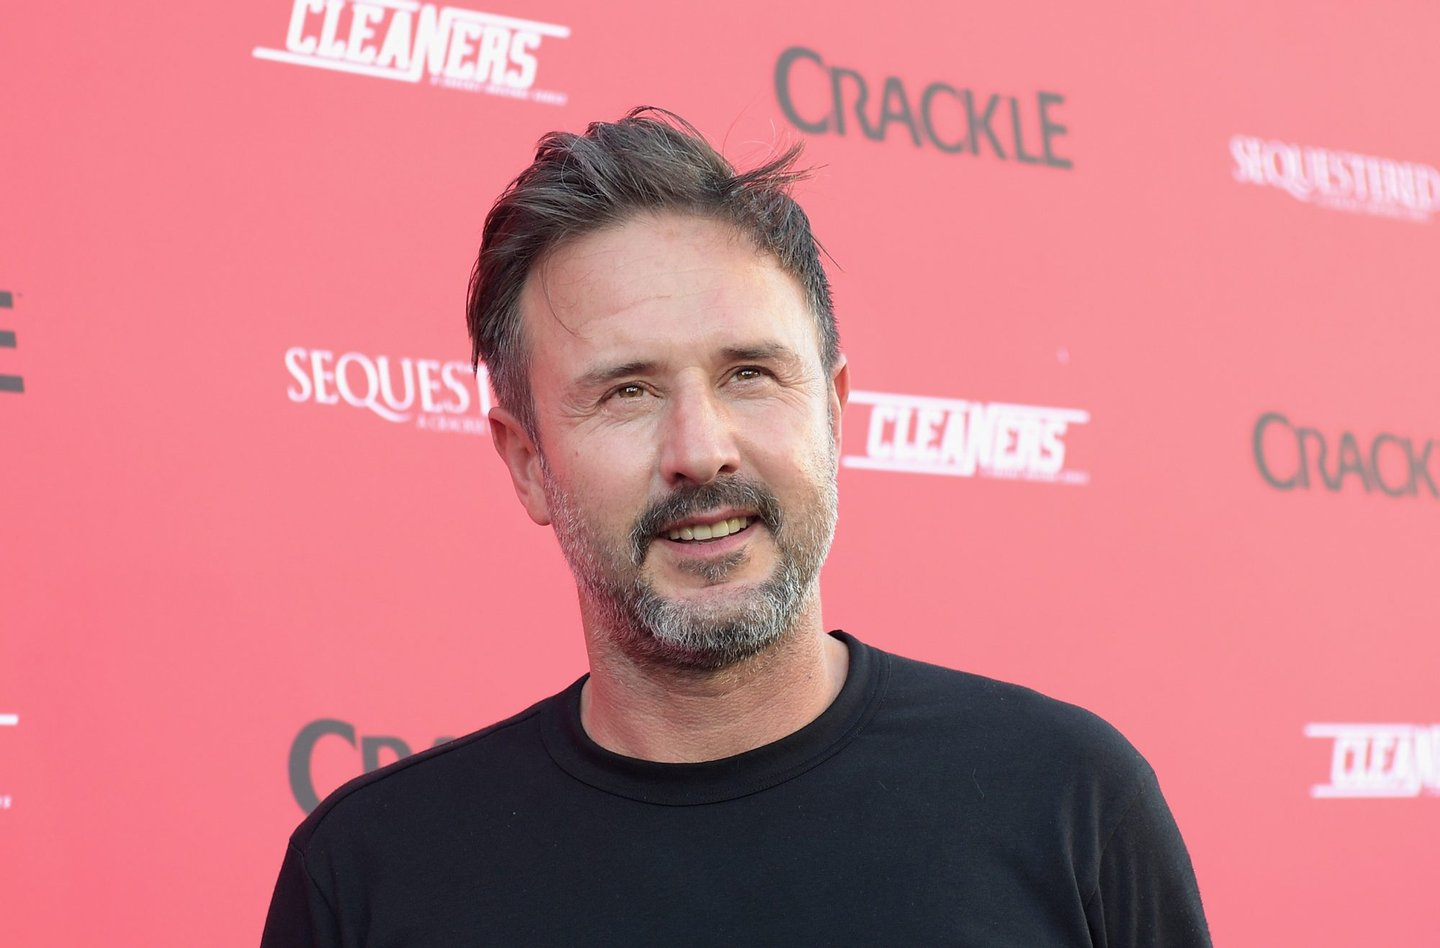 """WEST HOLLYWOOD, CA - AUGUST 14: Actor David Arquette attends Crackle's Summer Premieres Event Celebrating The Launch Of """"Sequestered"""" And """"Cleaners"""" Season 2 at 1 OAK on August 14, 2014 in West Hollywood, California. (Photo by Jason Kempin/Getty Images)"""